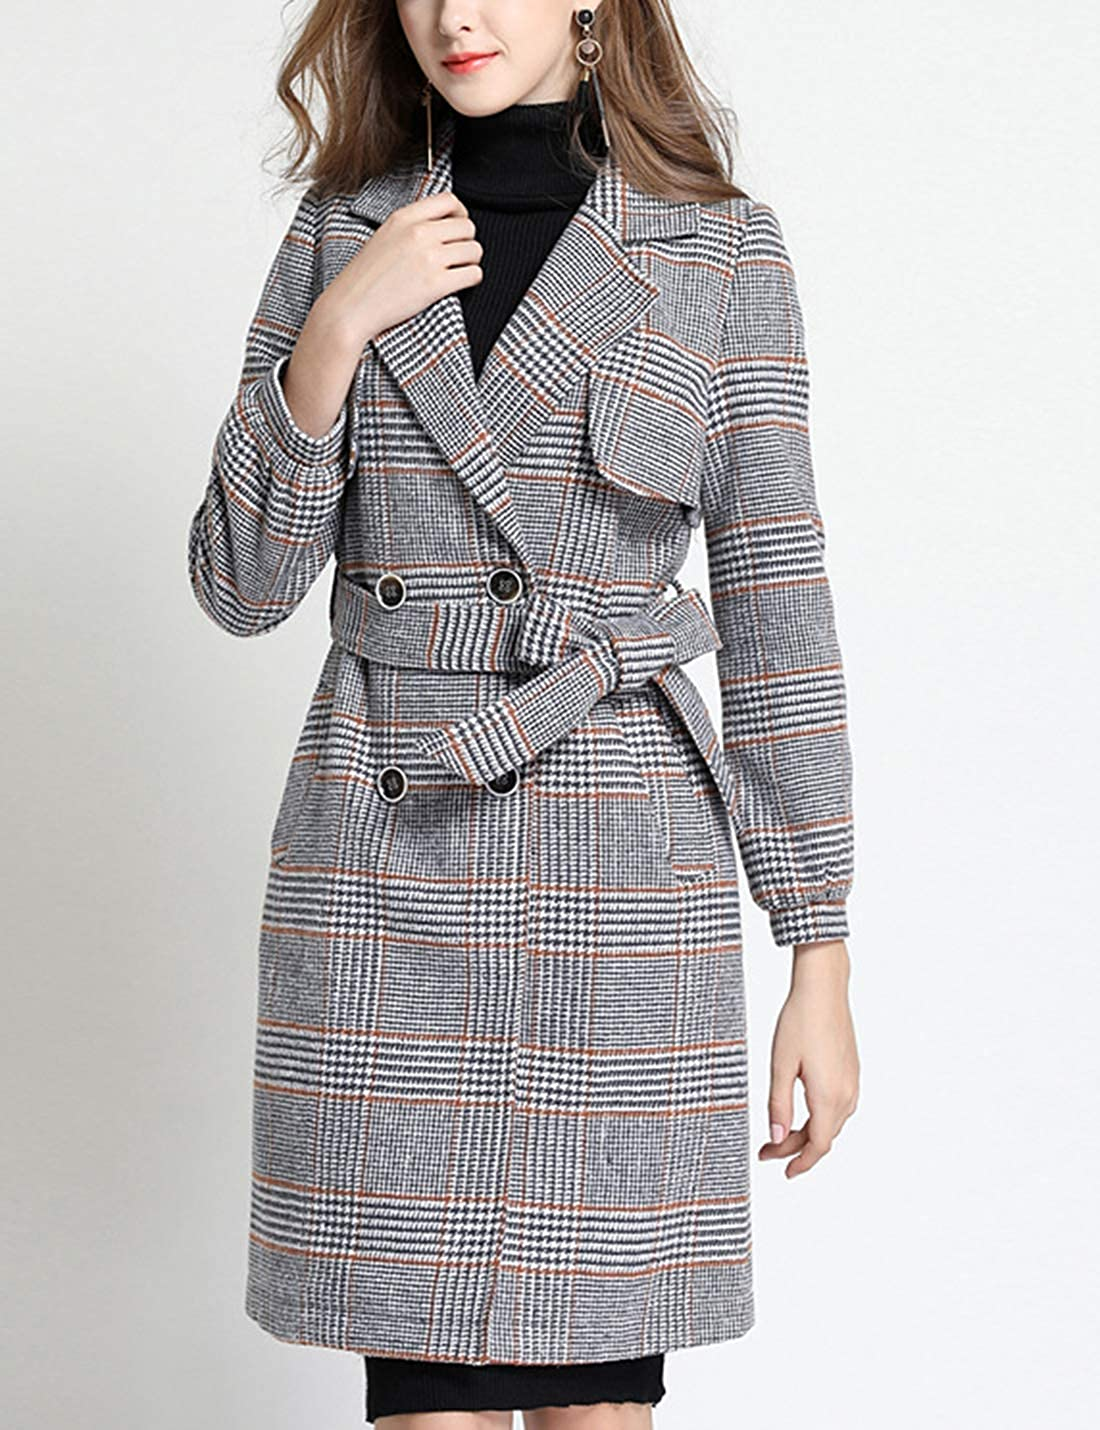 Springrain Womens Double Breasted Wool Blend Plaid Long Pea Coat with Belt